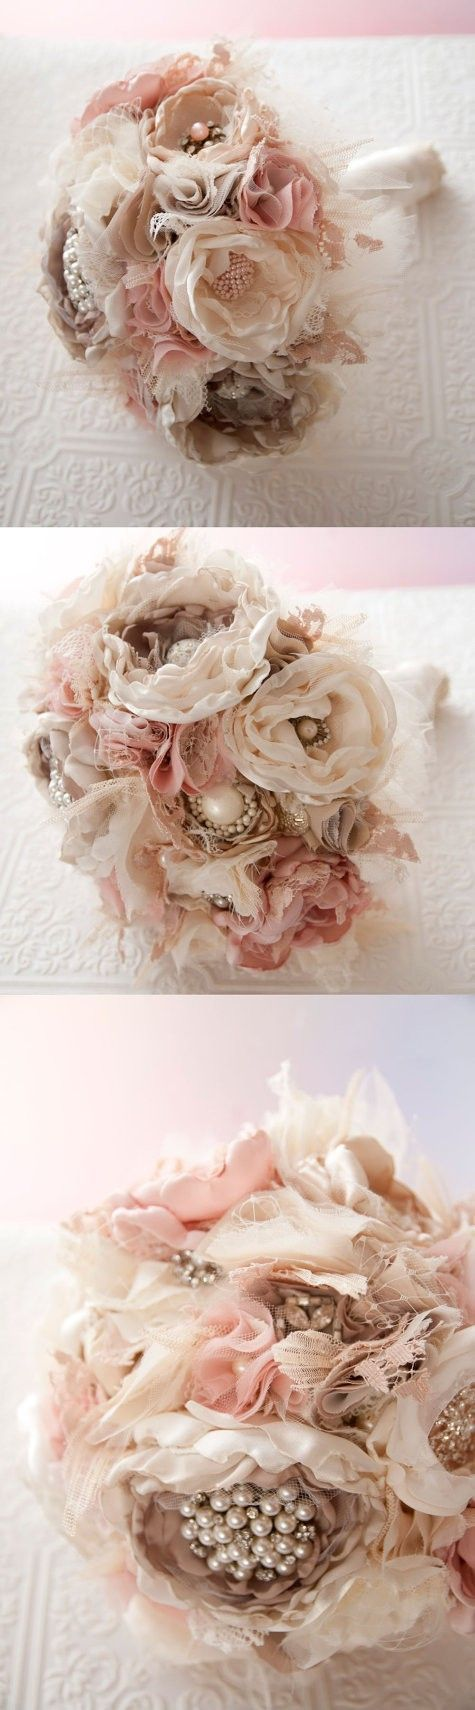 fabric flower bouquet. Good idea! It's actually really pretty. What do you guys think?